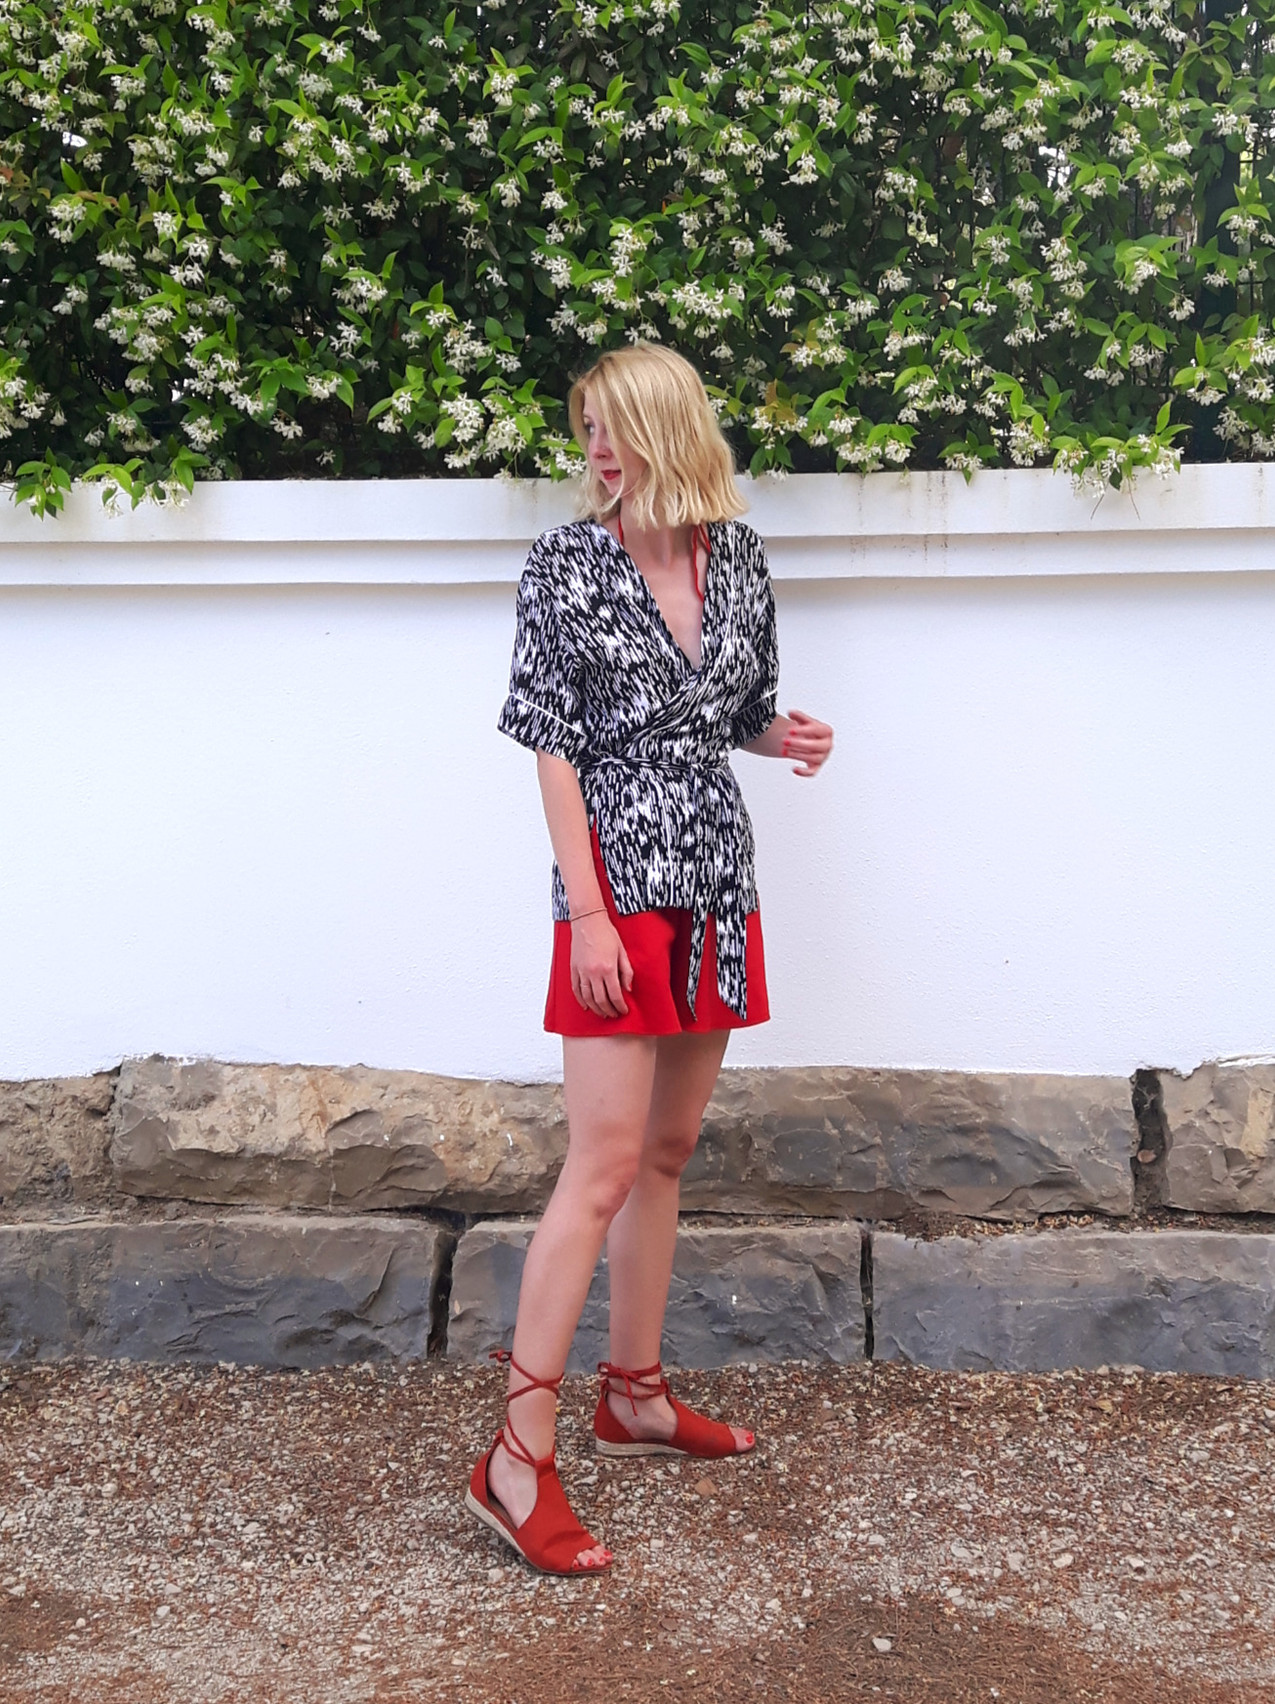 Summer outfit of kimono wrap top with shorts and sandals